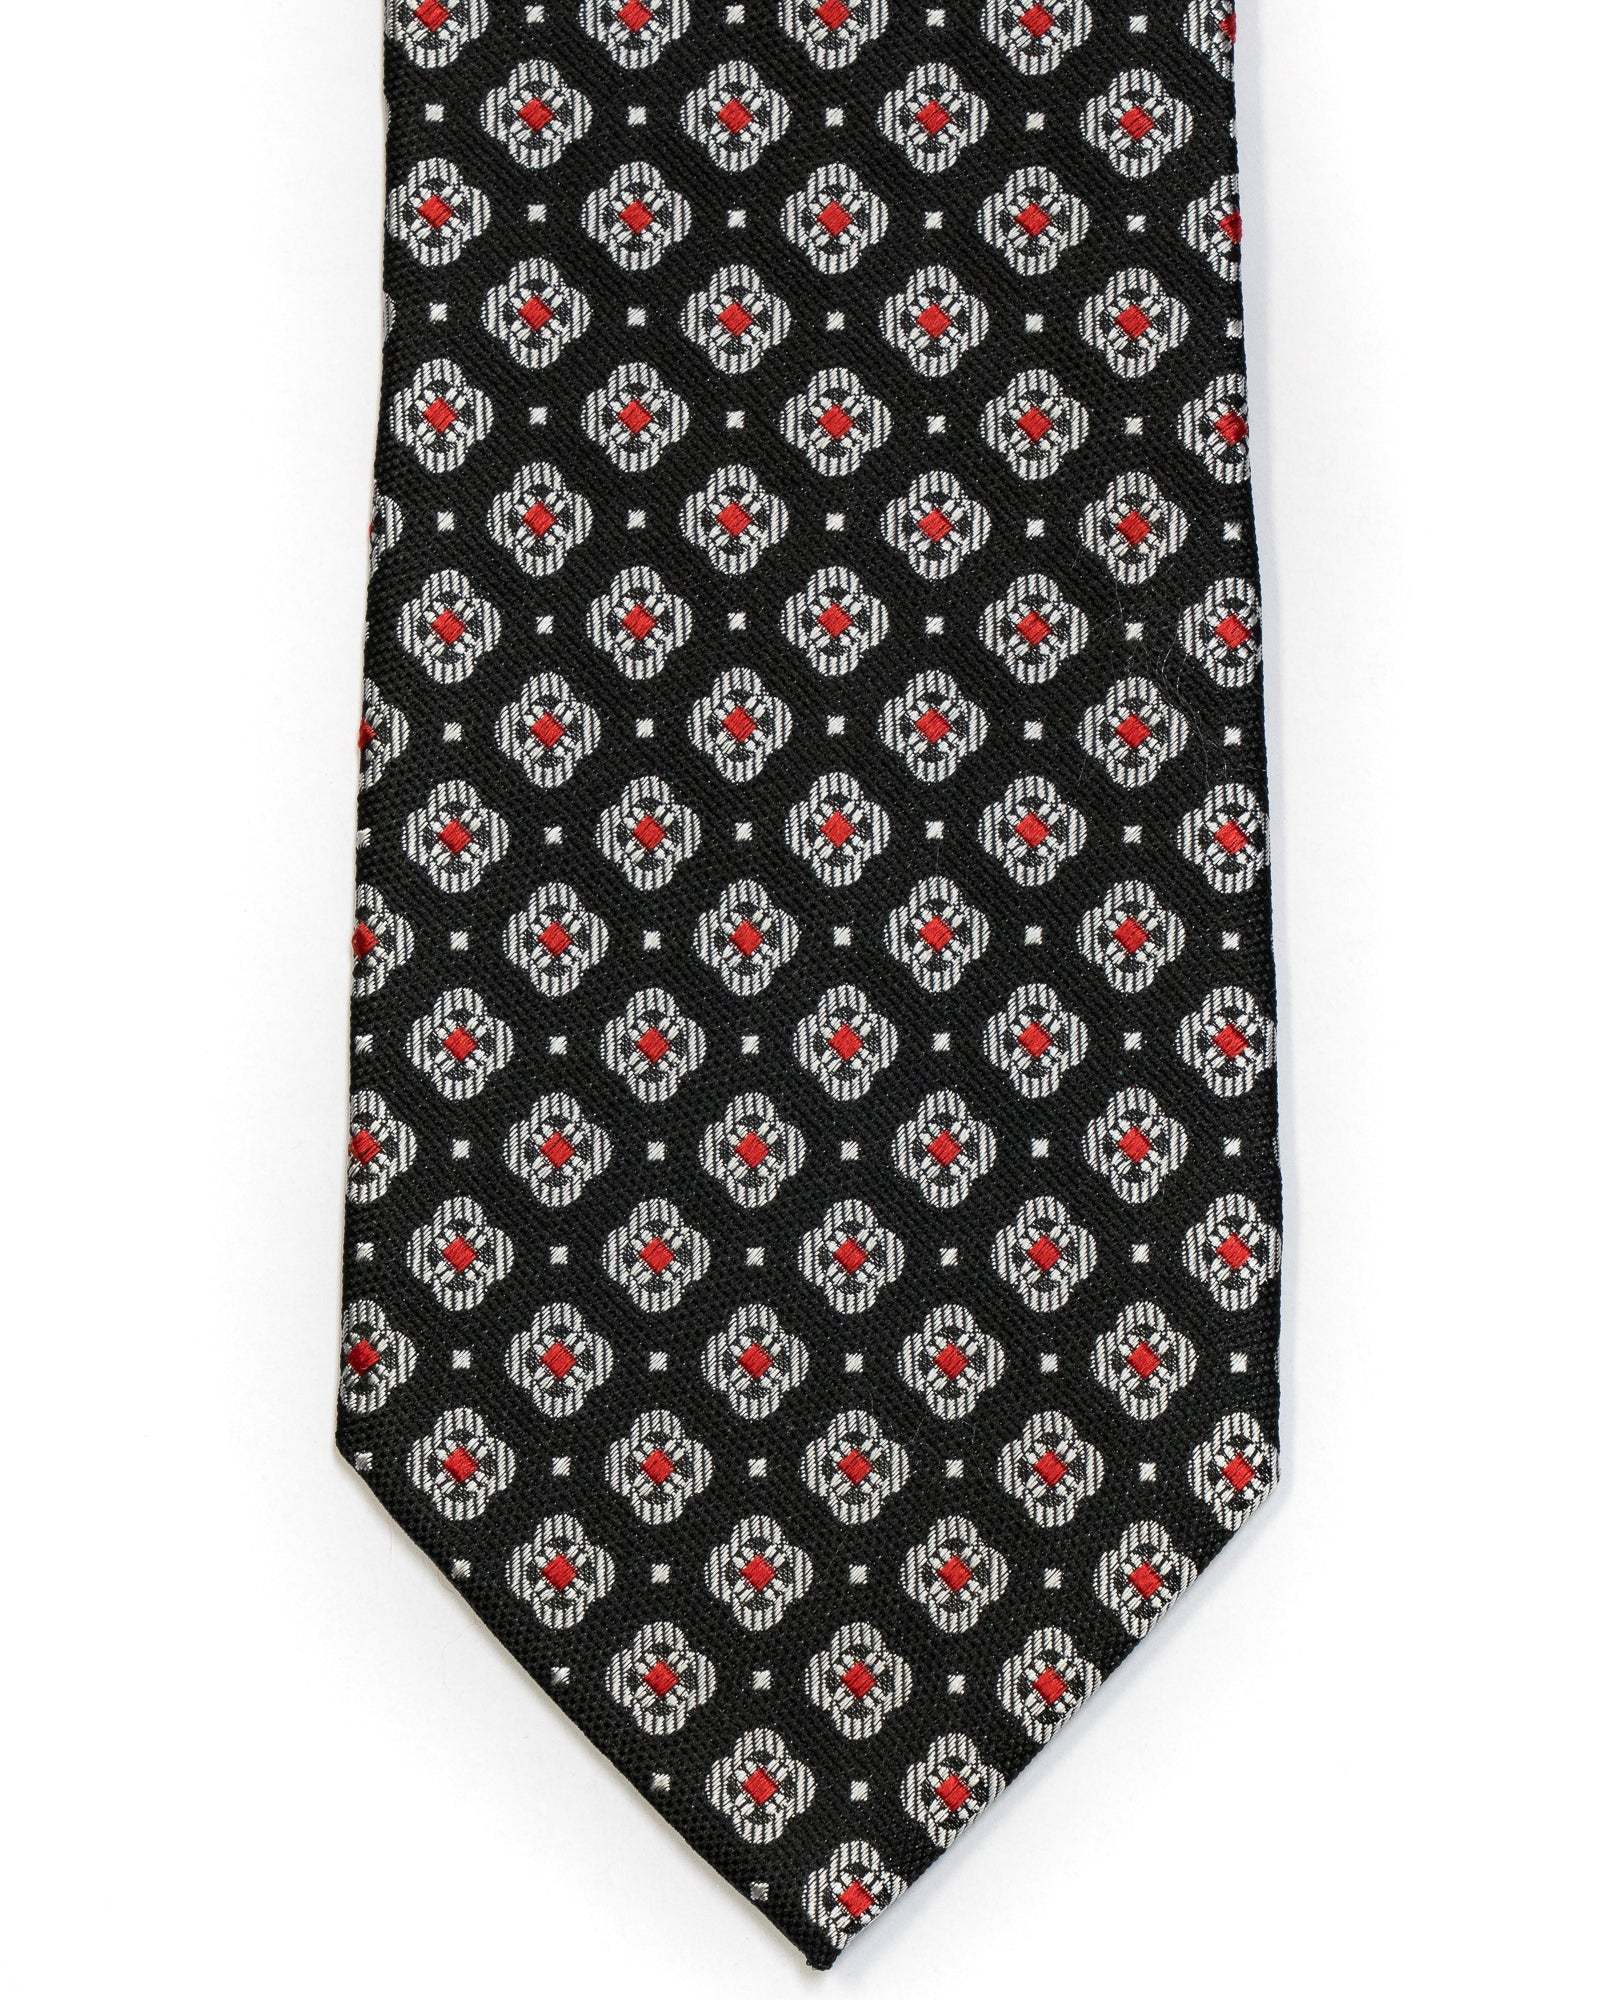 Silk Tie In Black With Grey & Red Foulard Design - Rainwater's Men's Clothing and Tuxedo Rental